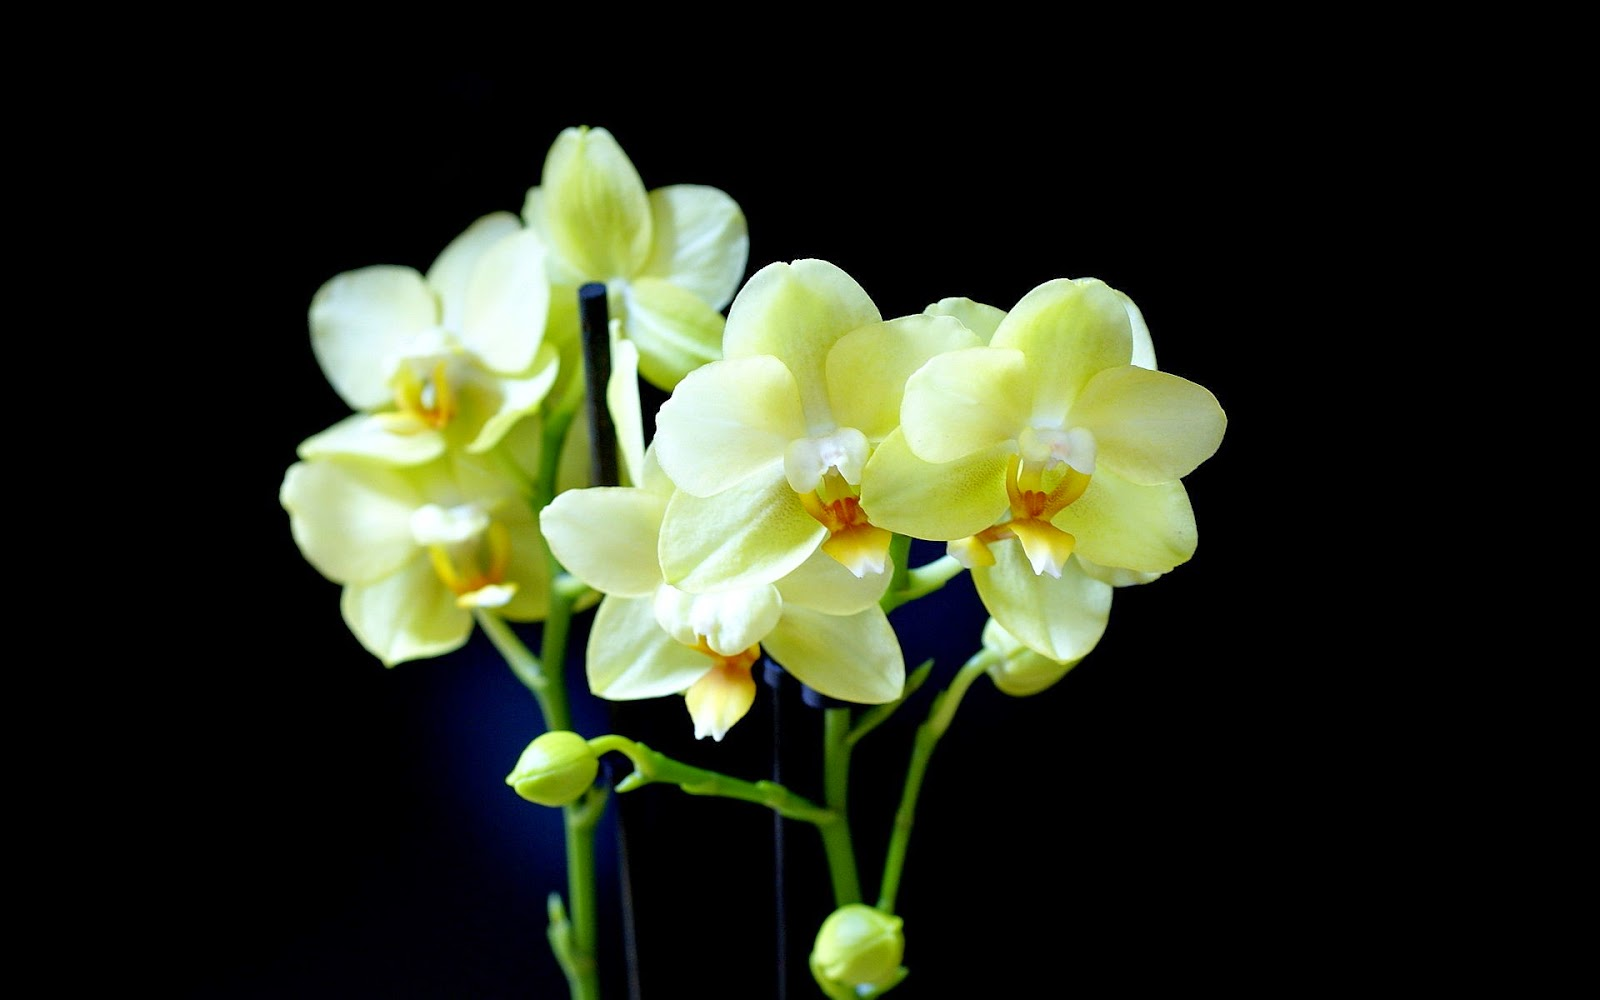 Yellowish-white-orchid-flower-with-black-background-stock-image.jpg